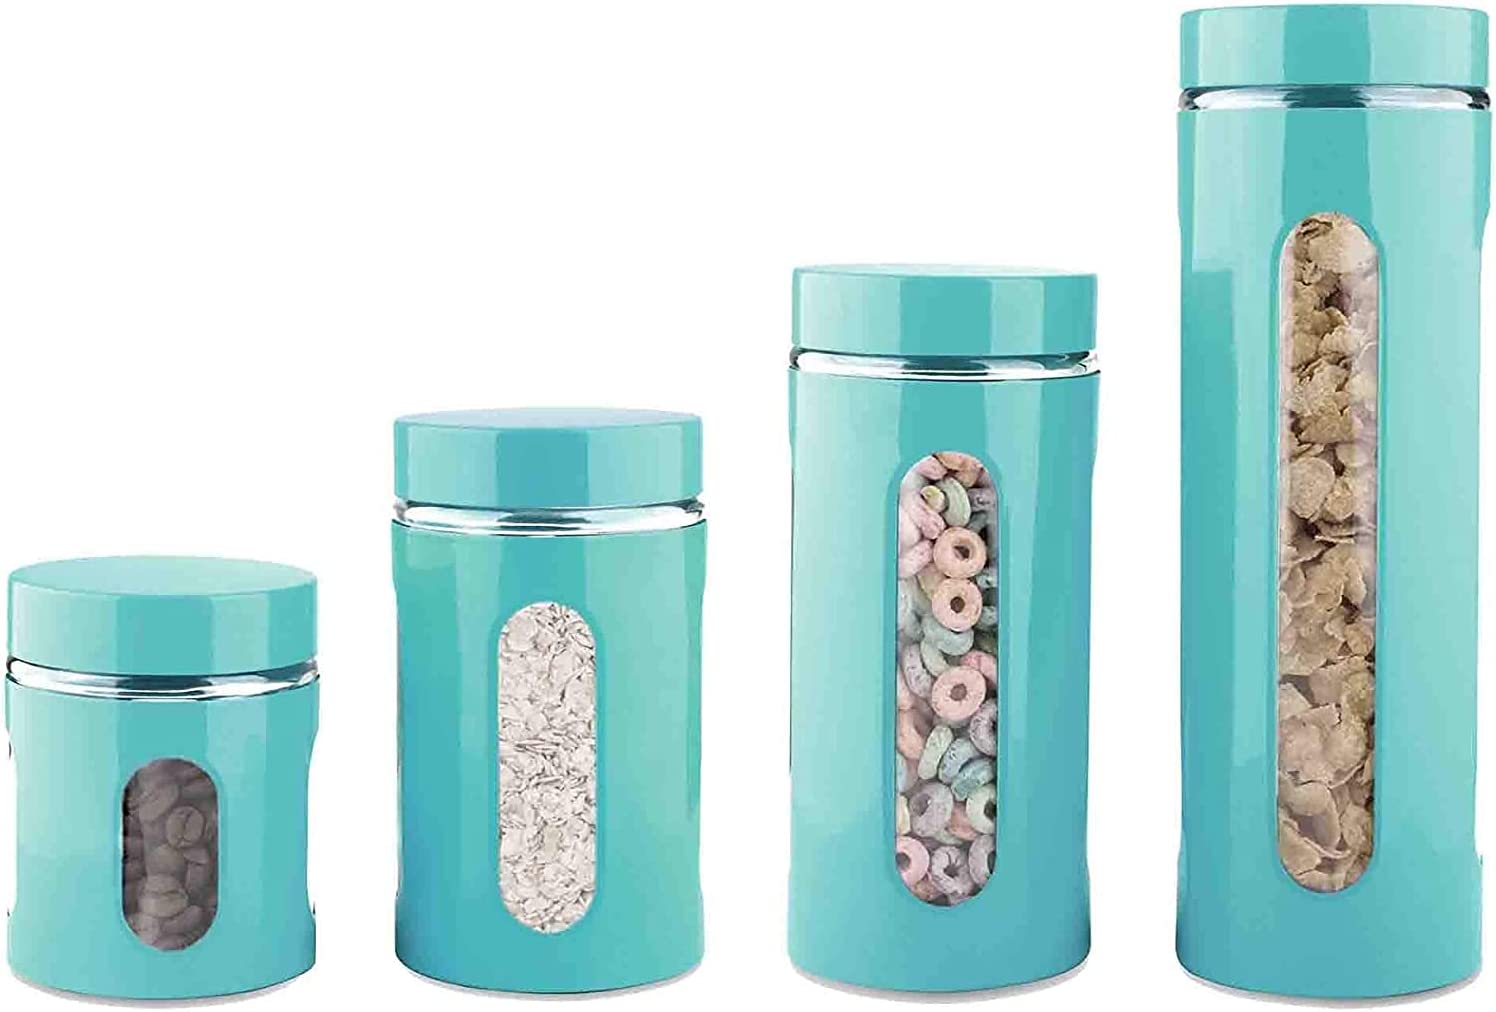 4 Piece Stainless Steel Coated Windows Canister Glass with Popular product Max 47% OFF Set